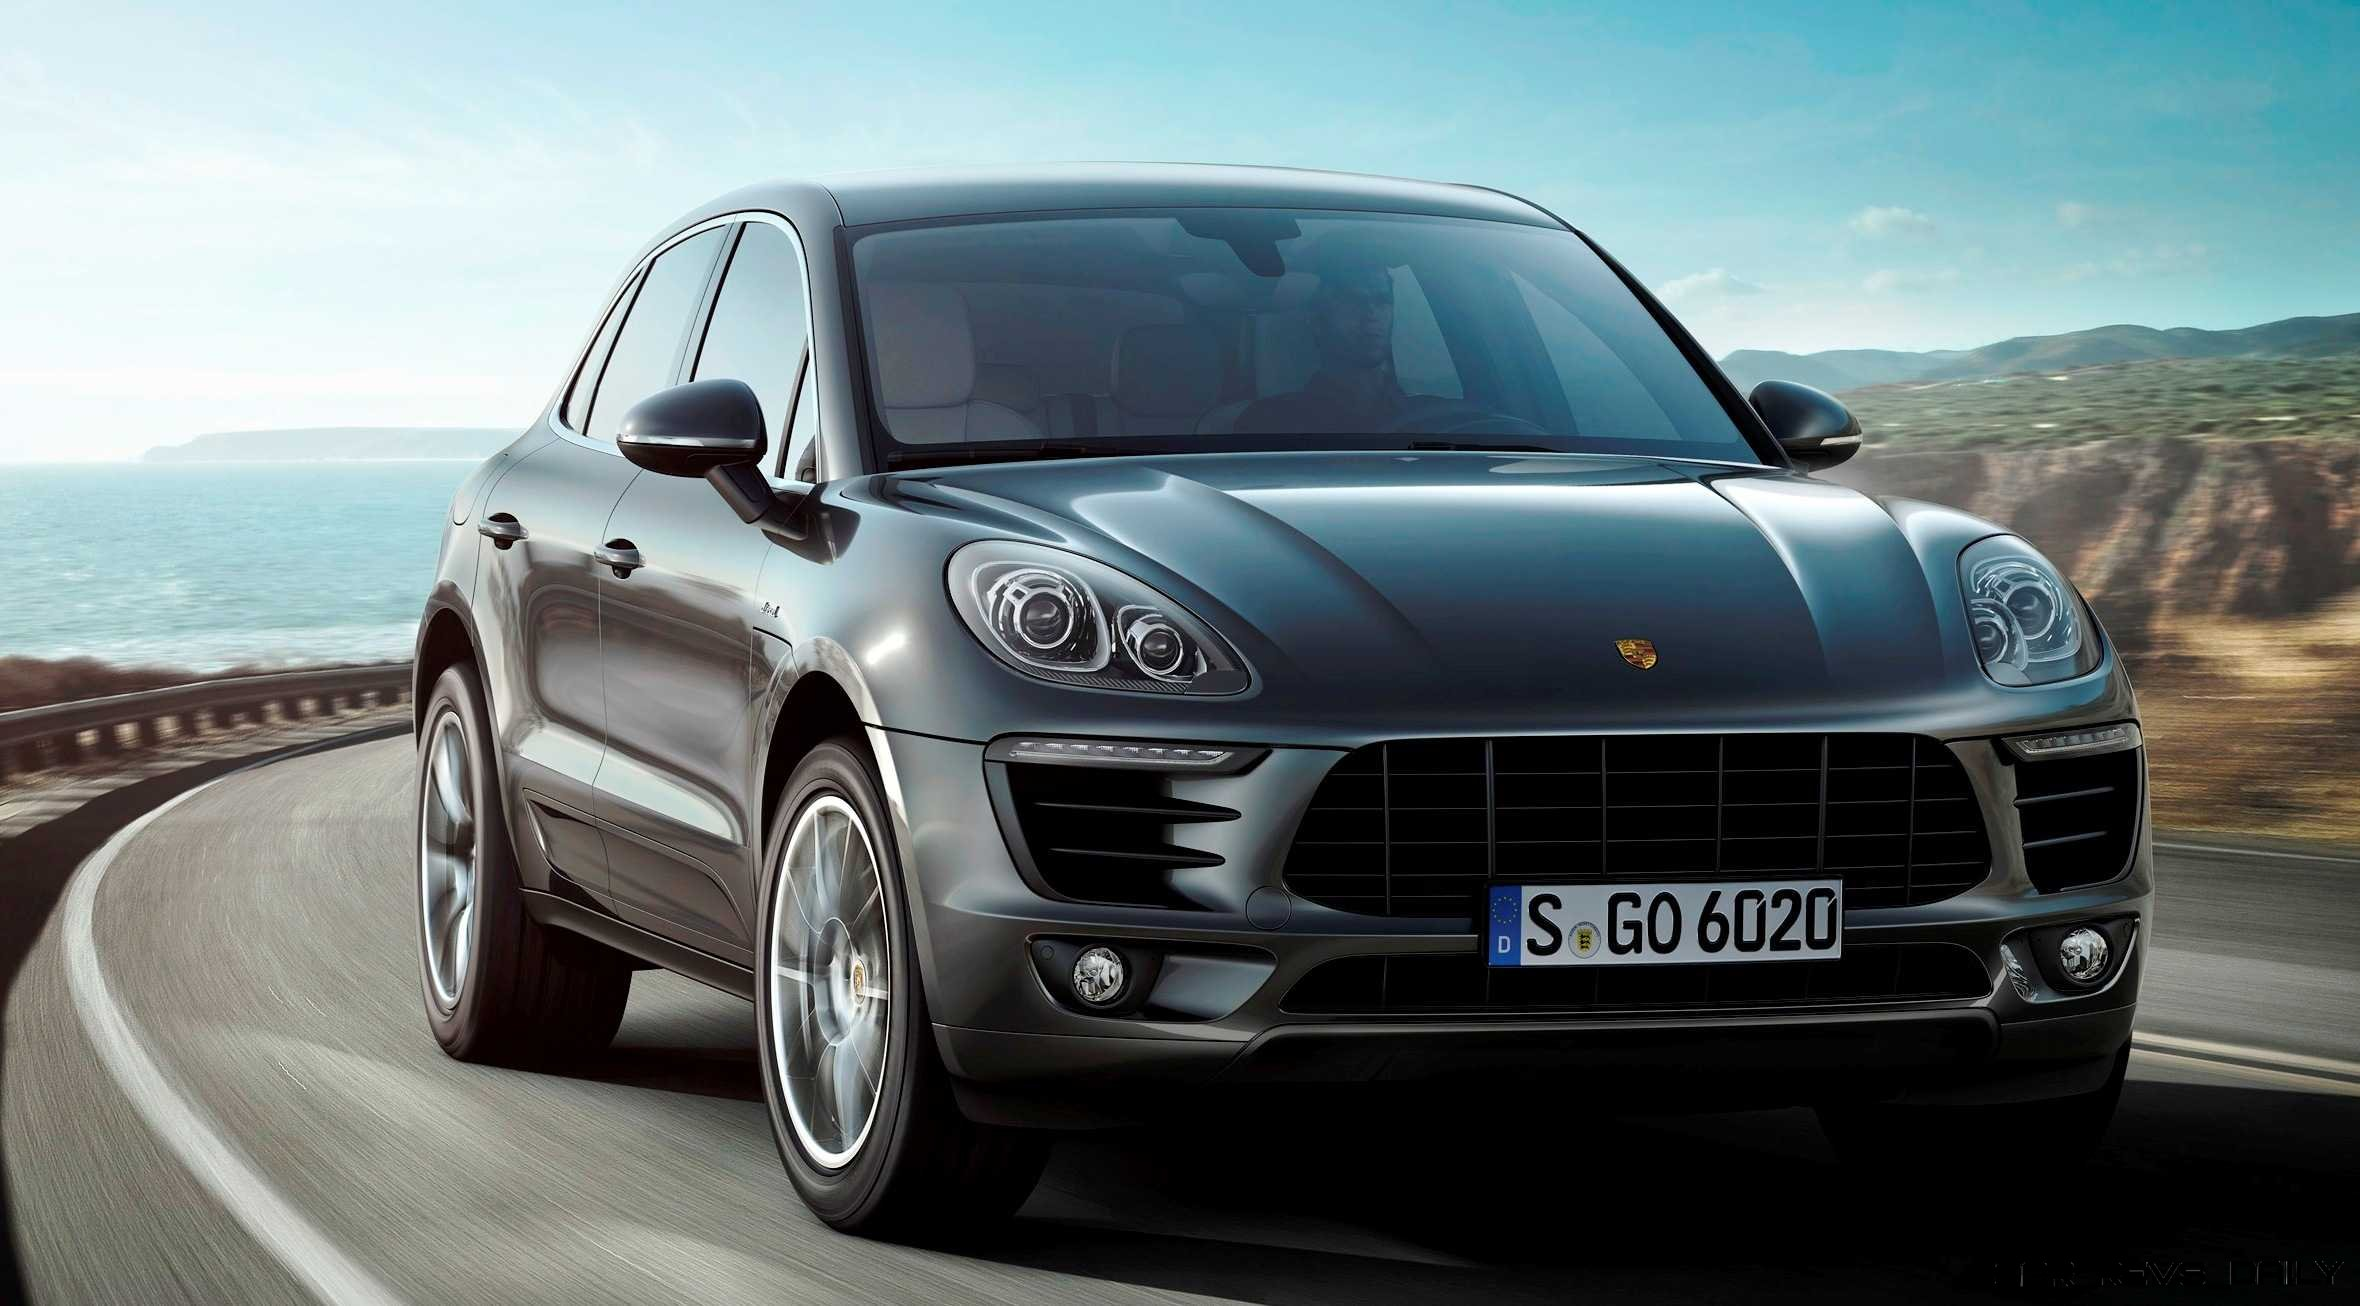 2014 Porsche Macan Turbo and Macan S - Official Debut Photos10